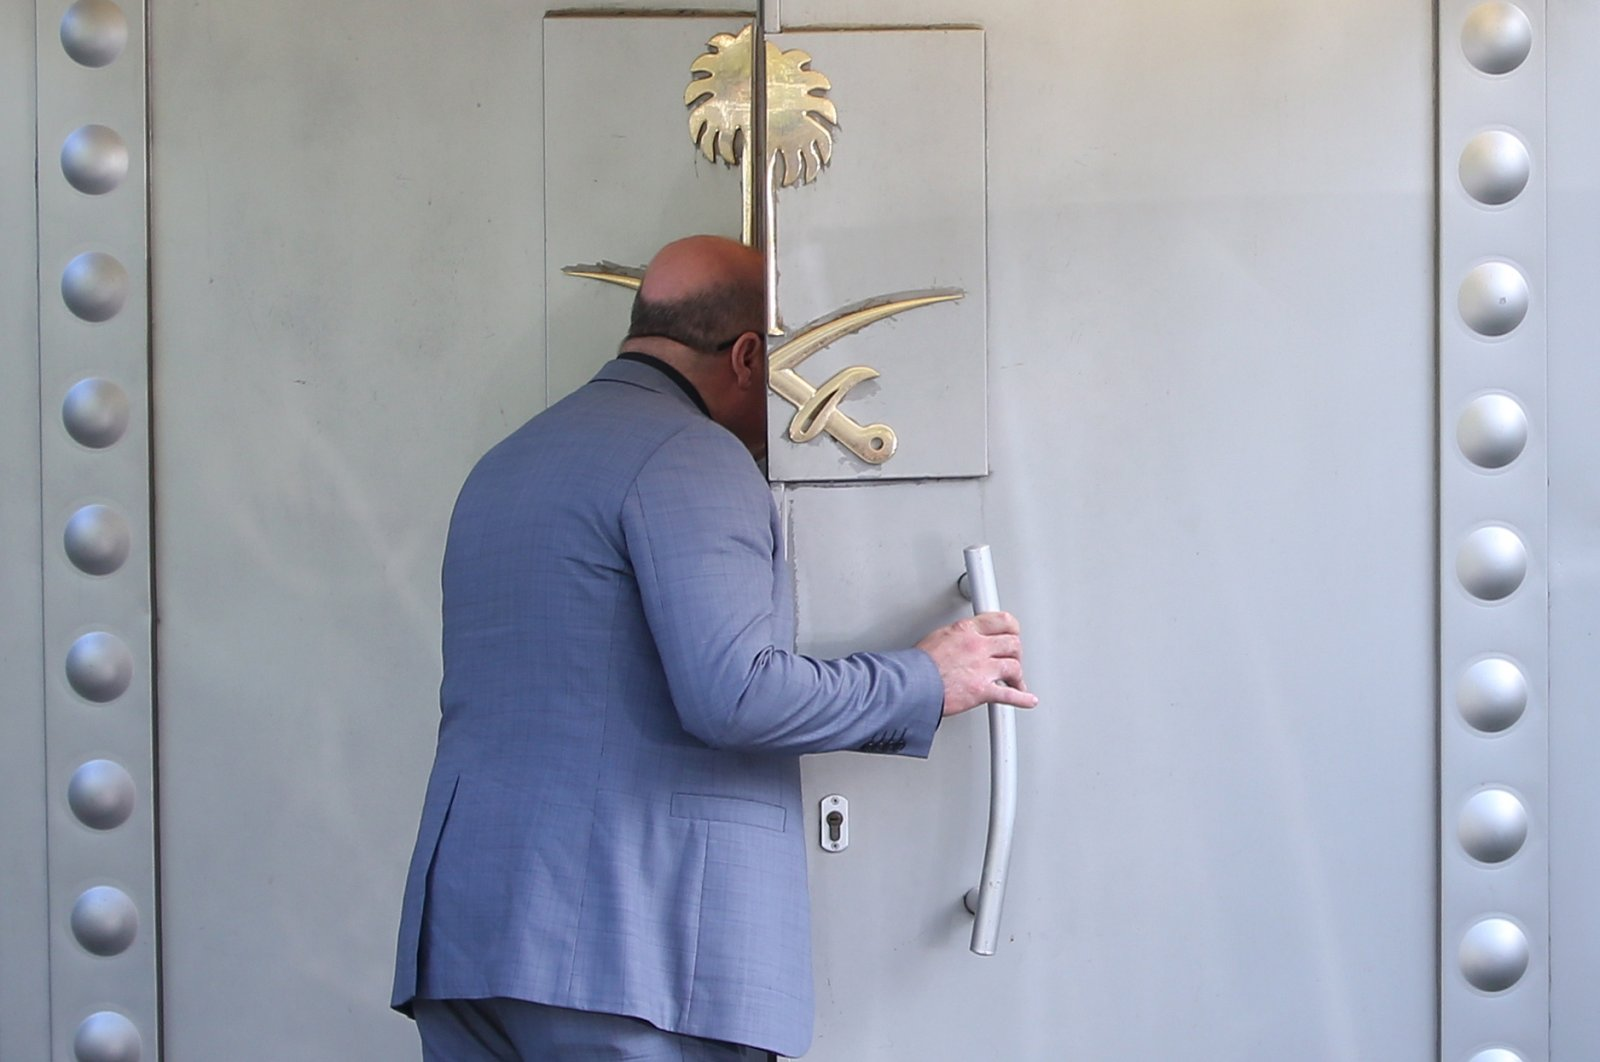 A Saudi official opens the door in the Saudi consulate in Istanbul, Turkey, Oct. 7, 2018. (EPA Photo)